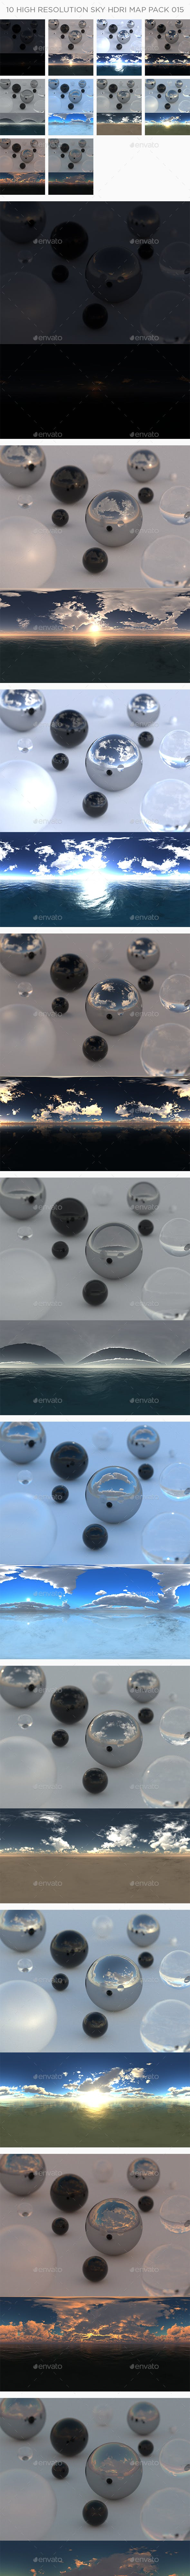 10 High Resolution Sky HDRi Maps Pack 015 - 3DOcean Item for Sale